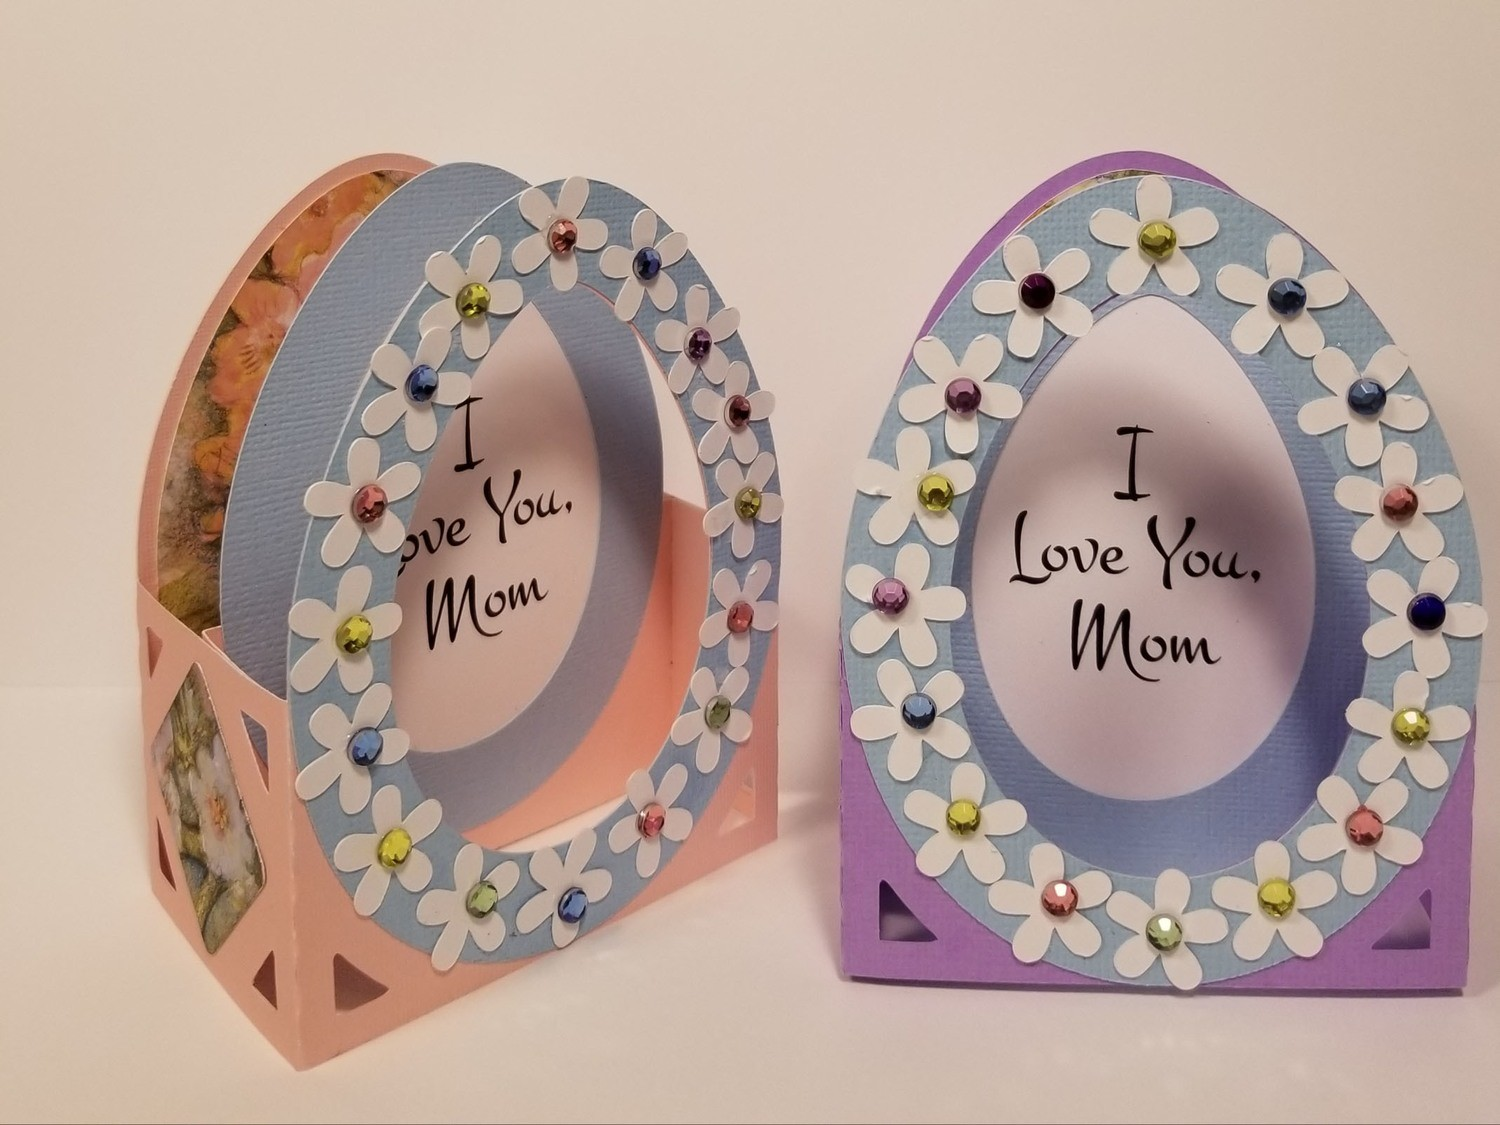 I LOVE YOU MOM Pop-Open Card